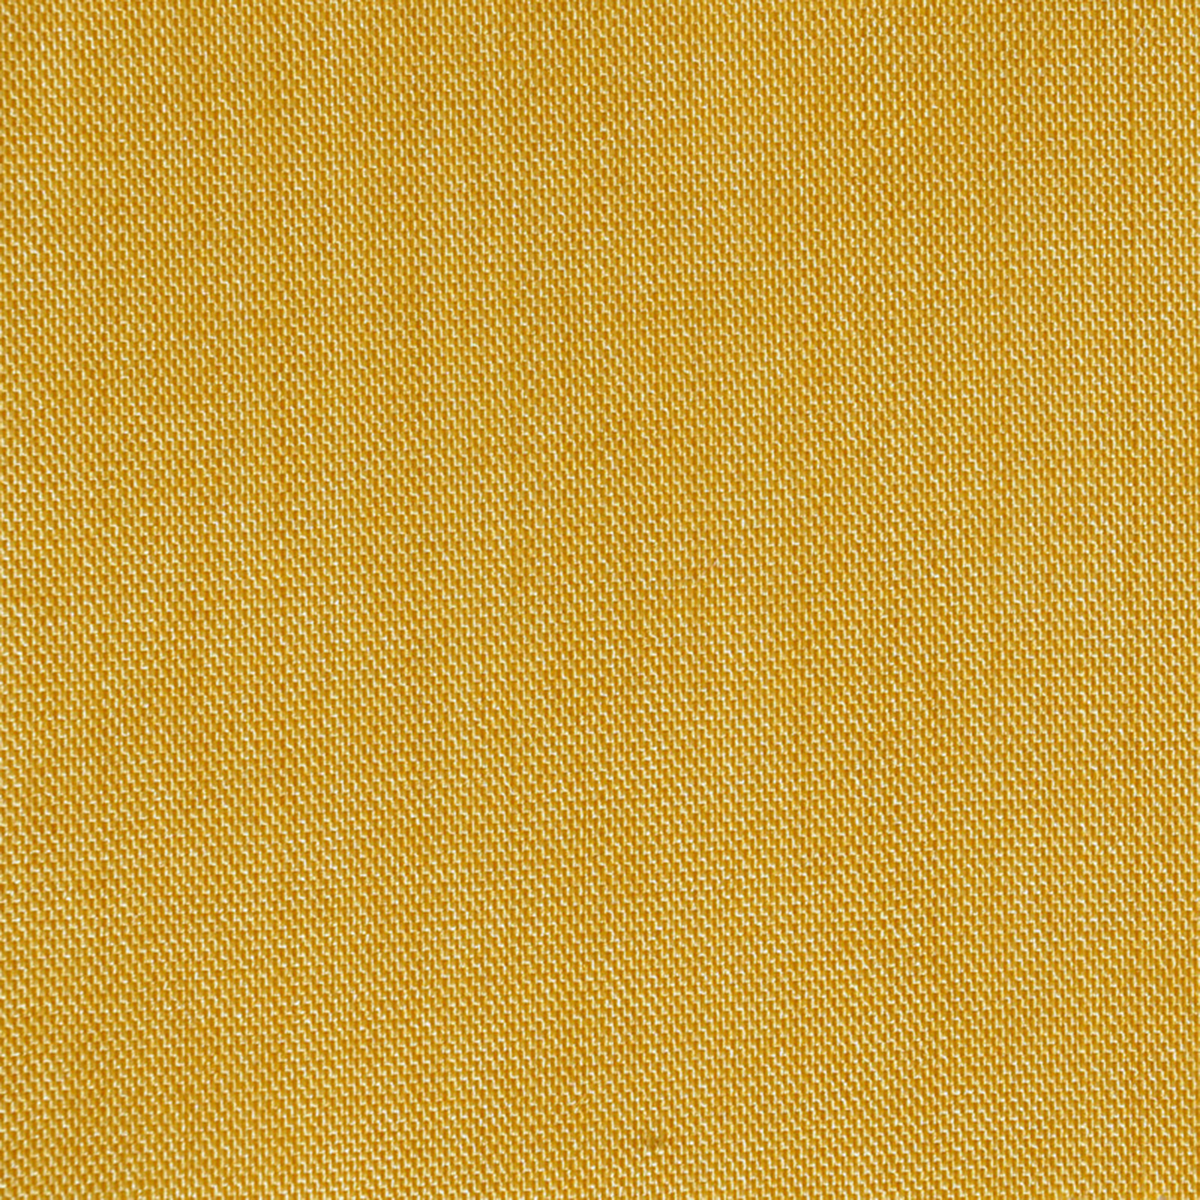 Silk for Shades - Ochre